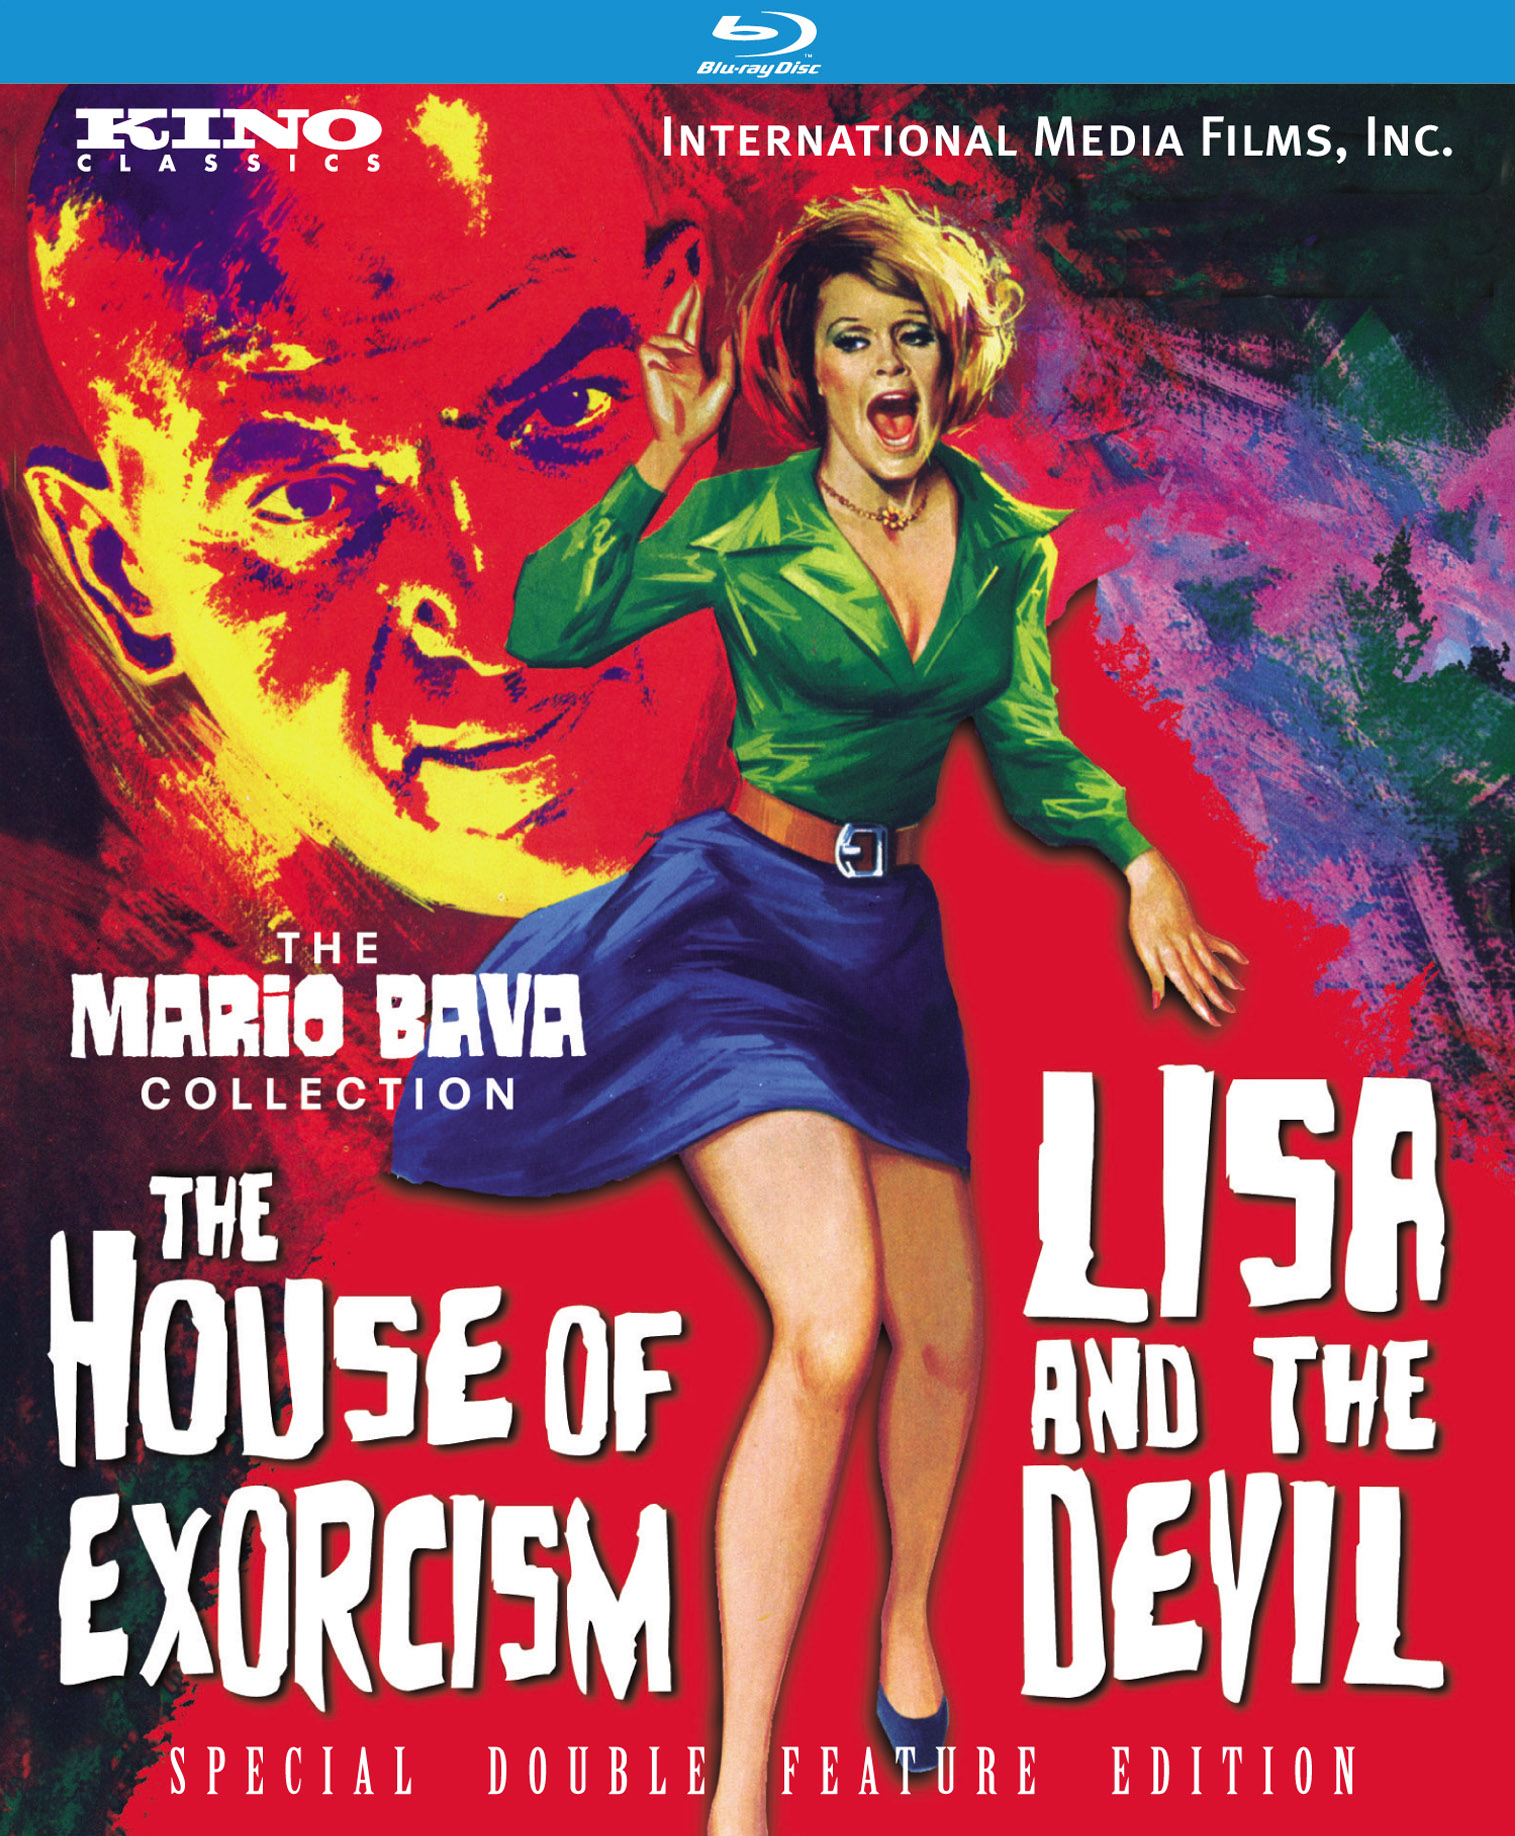 Lisa And The Devil Amp The House Of Exorcism Kino Lorber Theatrical